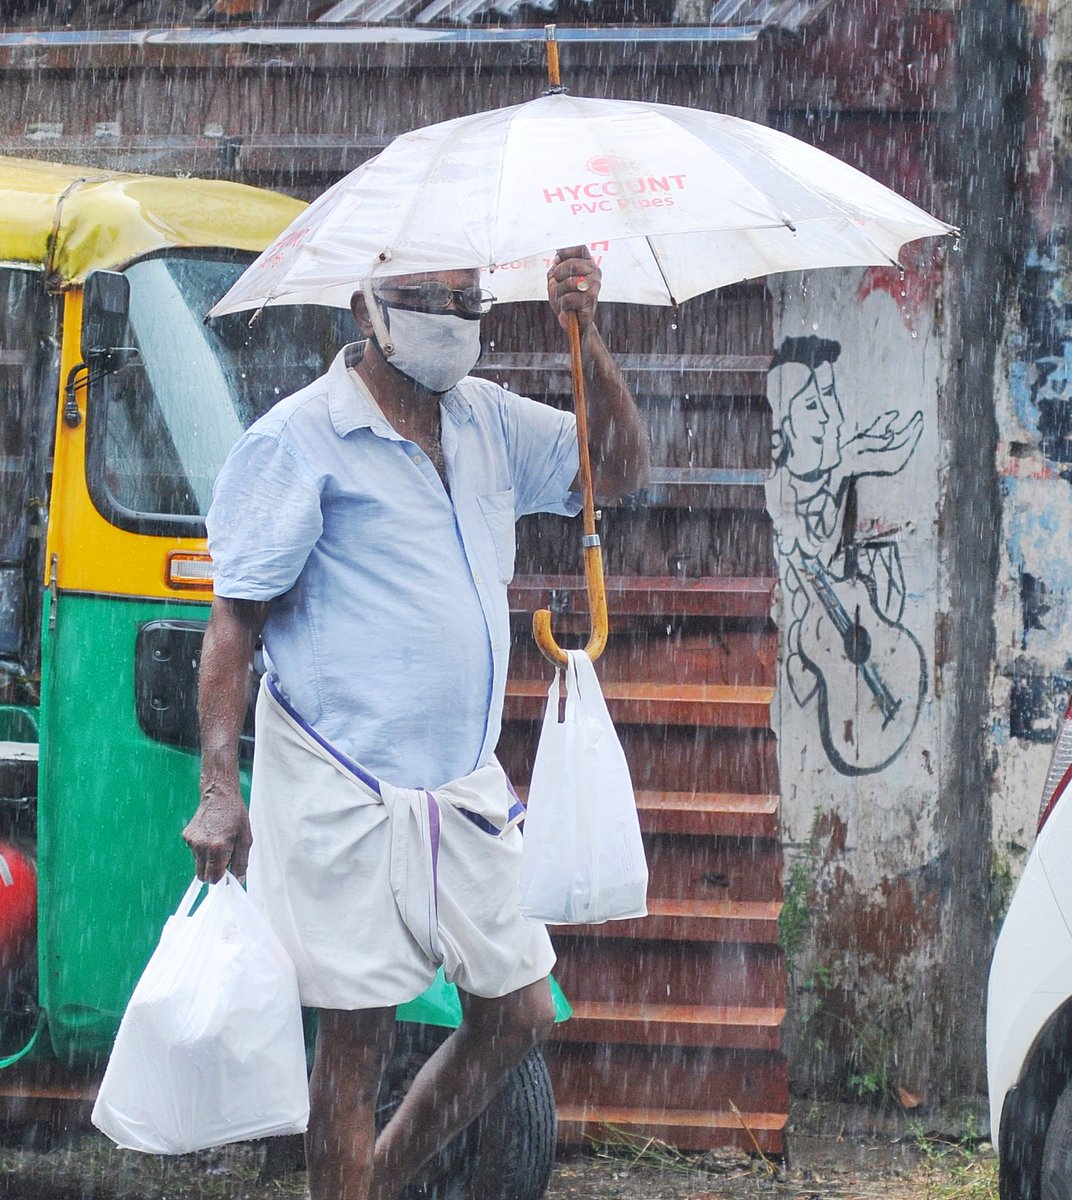 A senior citizen is balancing his bags of essentials as he walks under the mild shower which hit Kochi on Wednesday. #Kerala #Rain #Kochi #monsoon @NewIndianXpress @xpresskerala @shibasahu2012 @albin_tnie @MSKiranPrakash https://t.co/KvGyfEmgf9